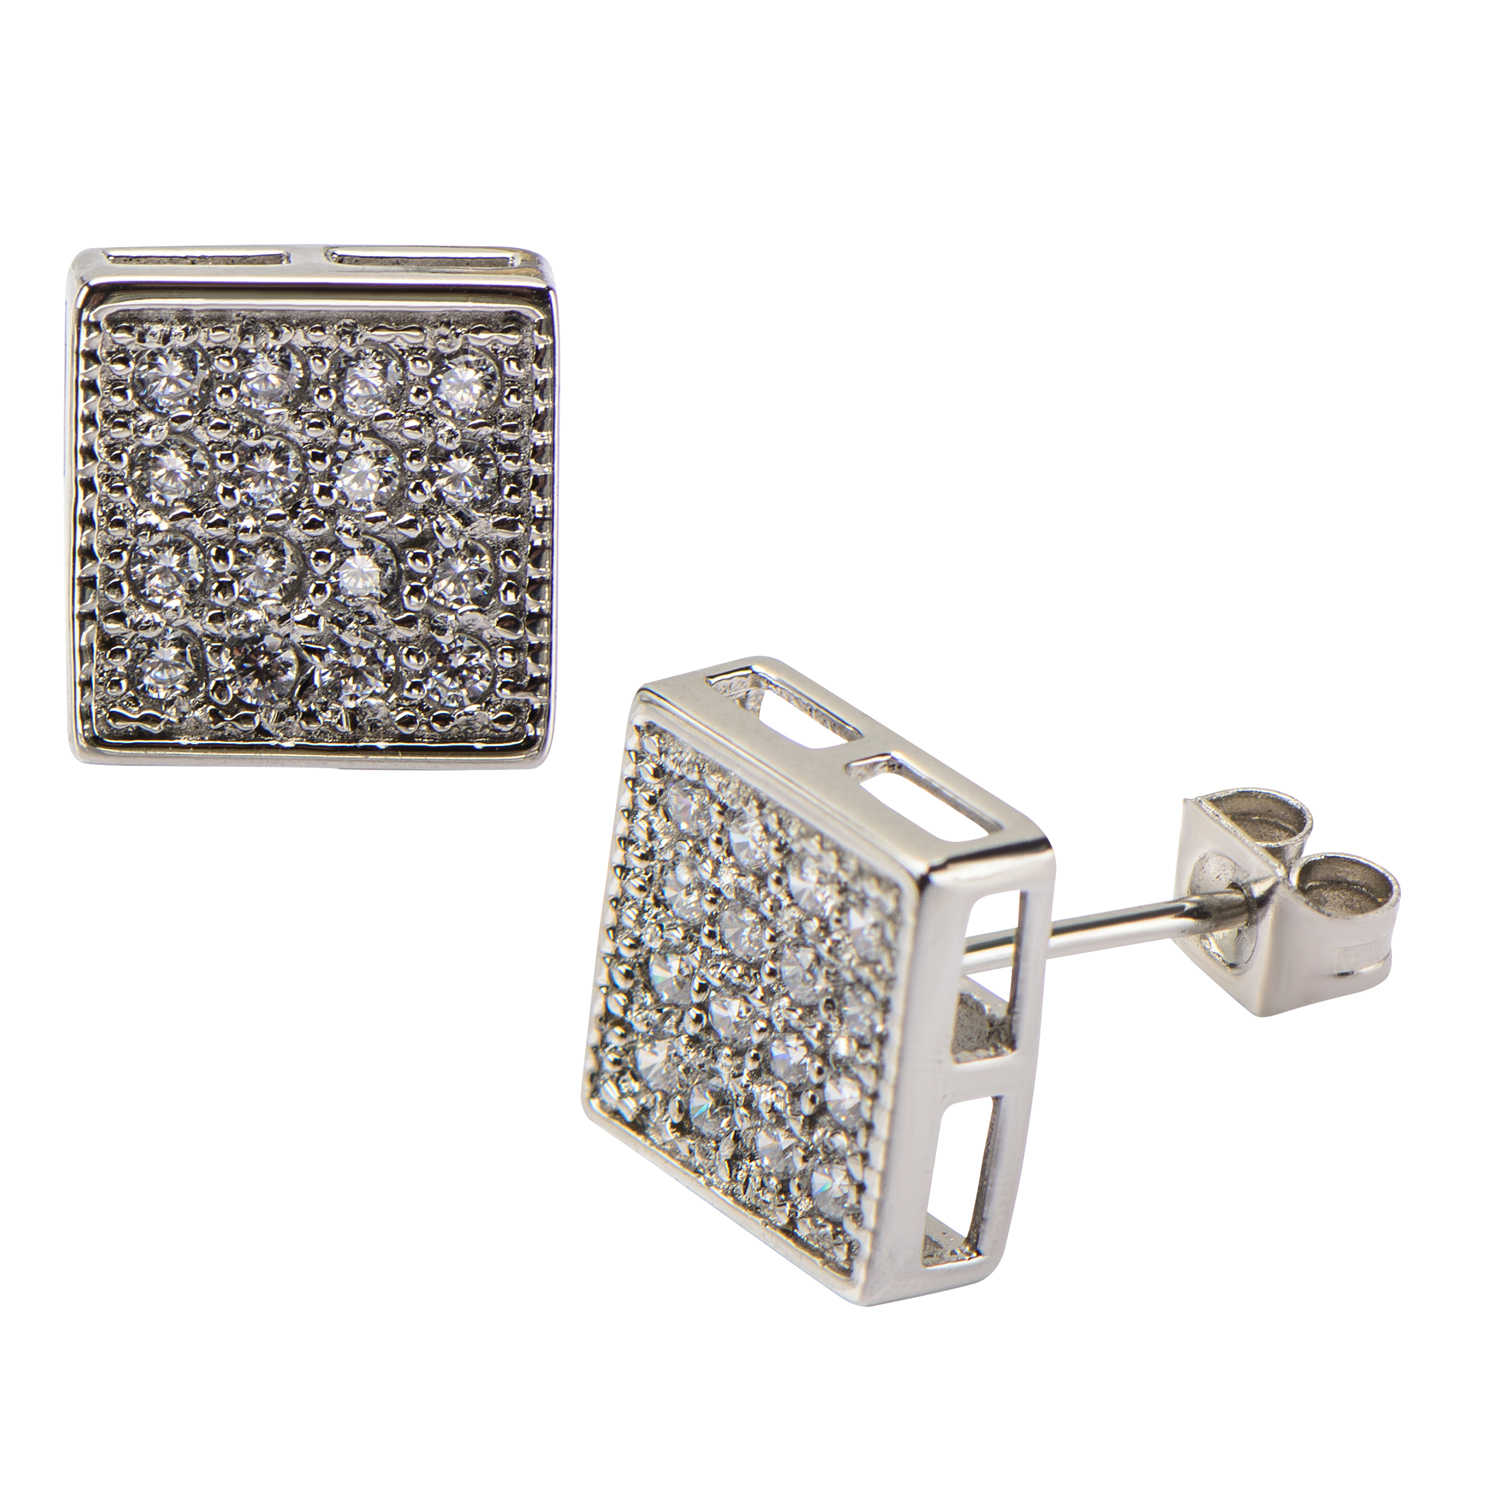 Body Art Stainless Steel with Clear CZ Stones in Pave Set Square Hip Hop Studs Earrings